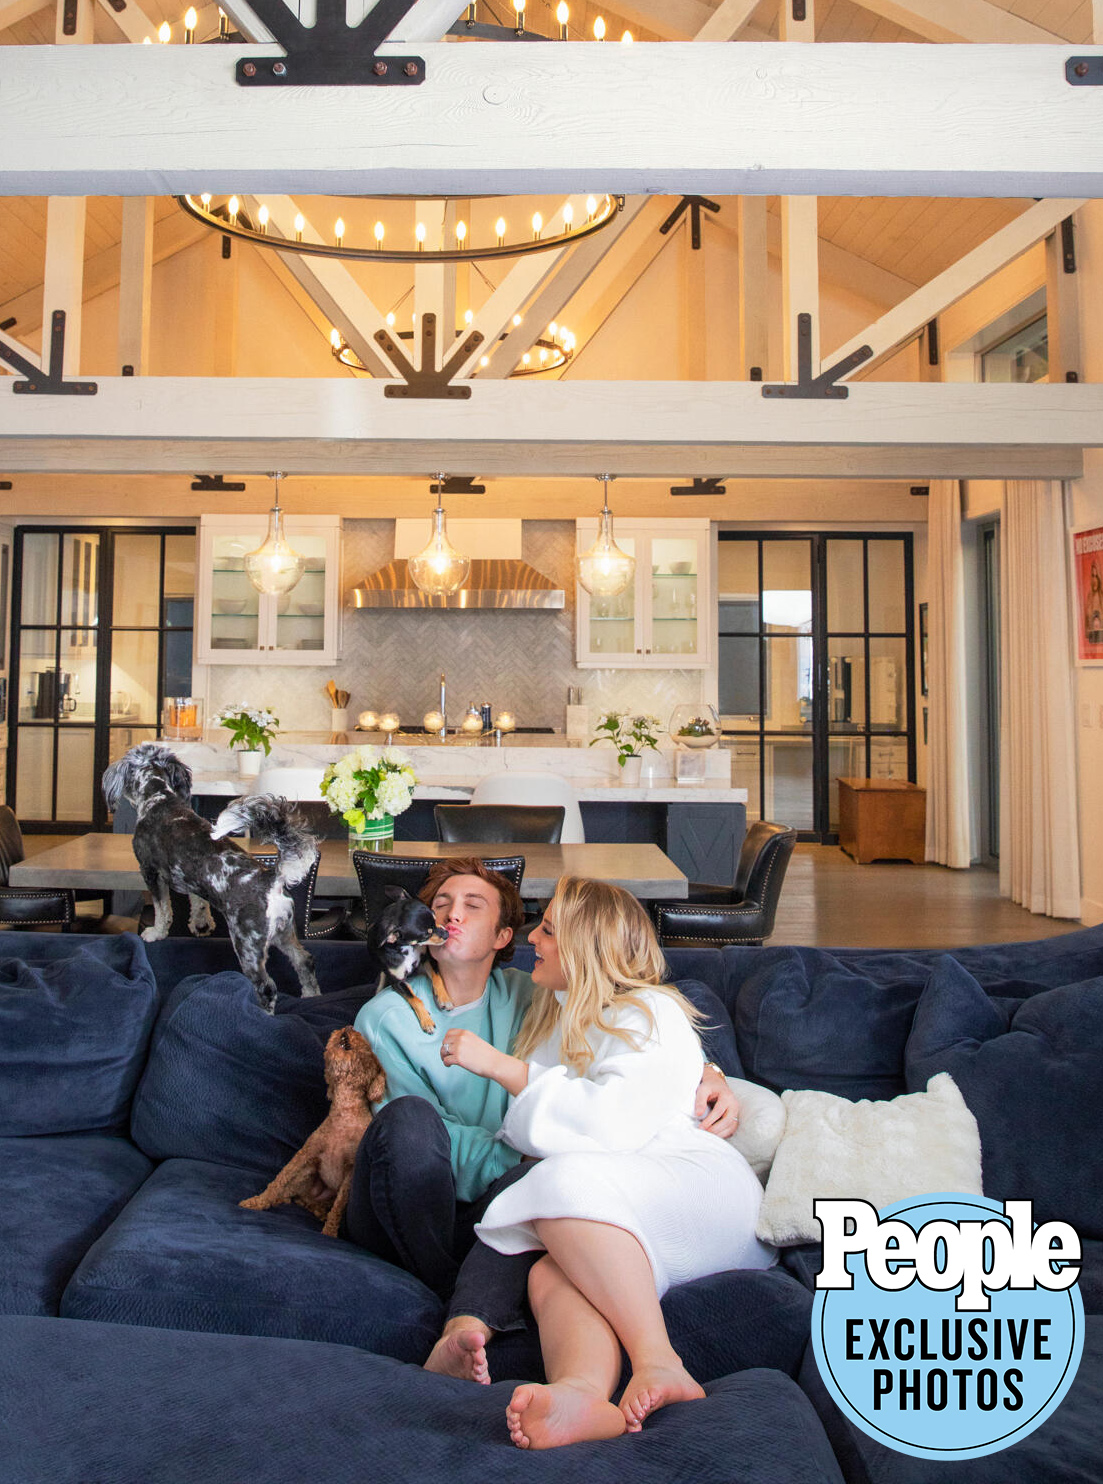 Meghan Trainor for People at her home in Toluca Lake with husband Daryl; Gladees photo editor with Ben onsite